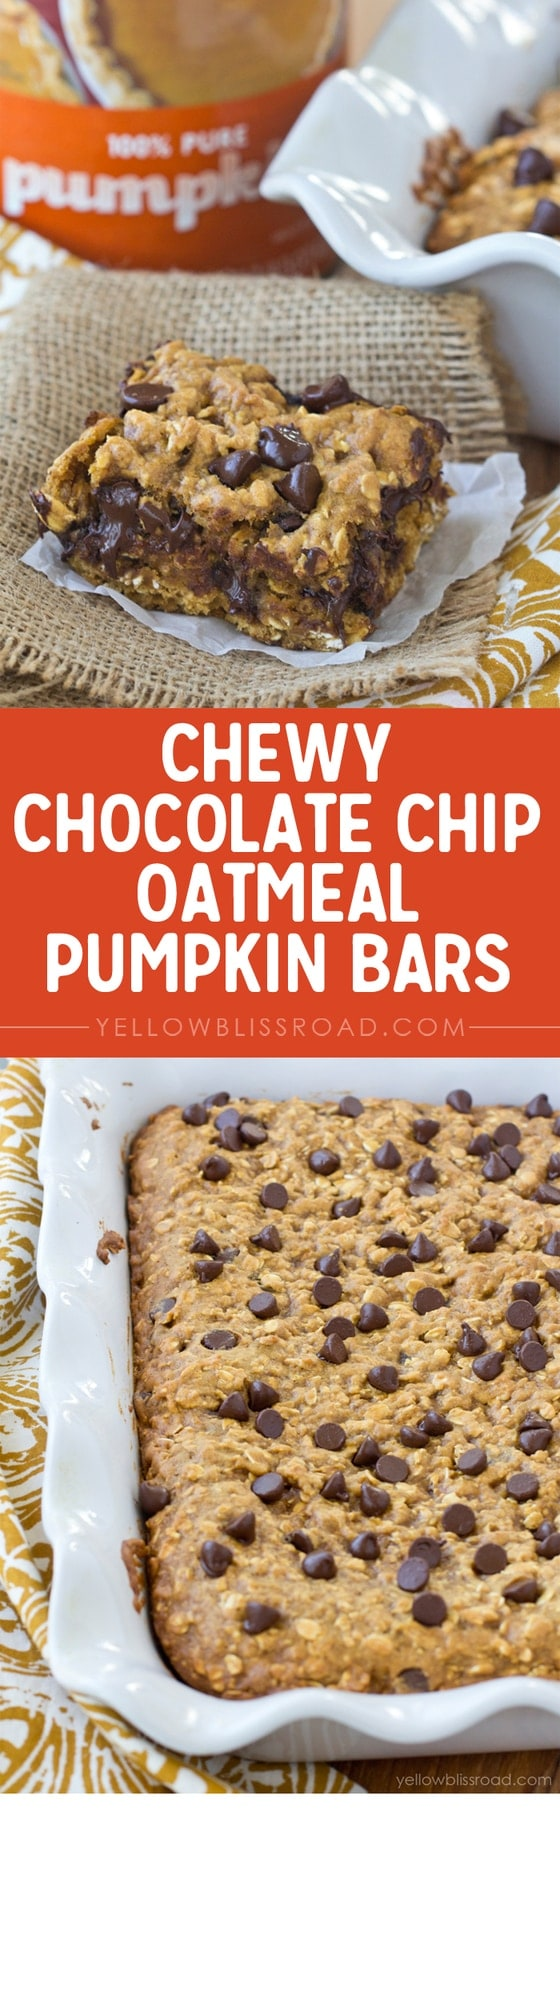 Chewy Chocolate Chip Oatmeal Pumpkin Bars